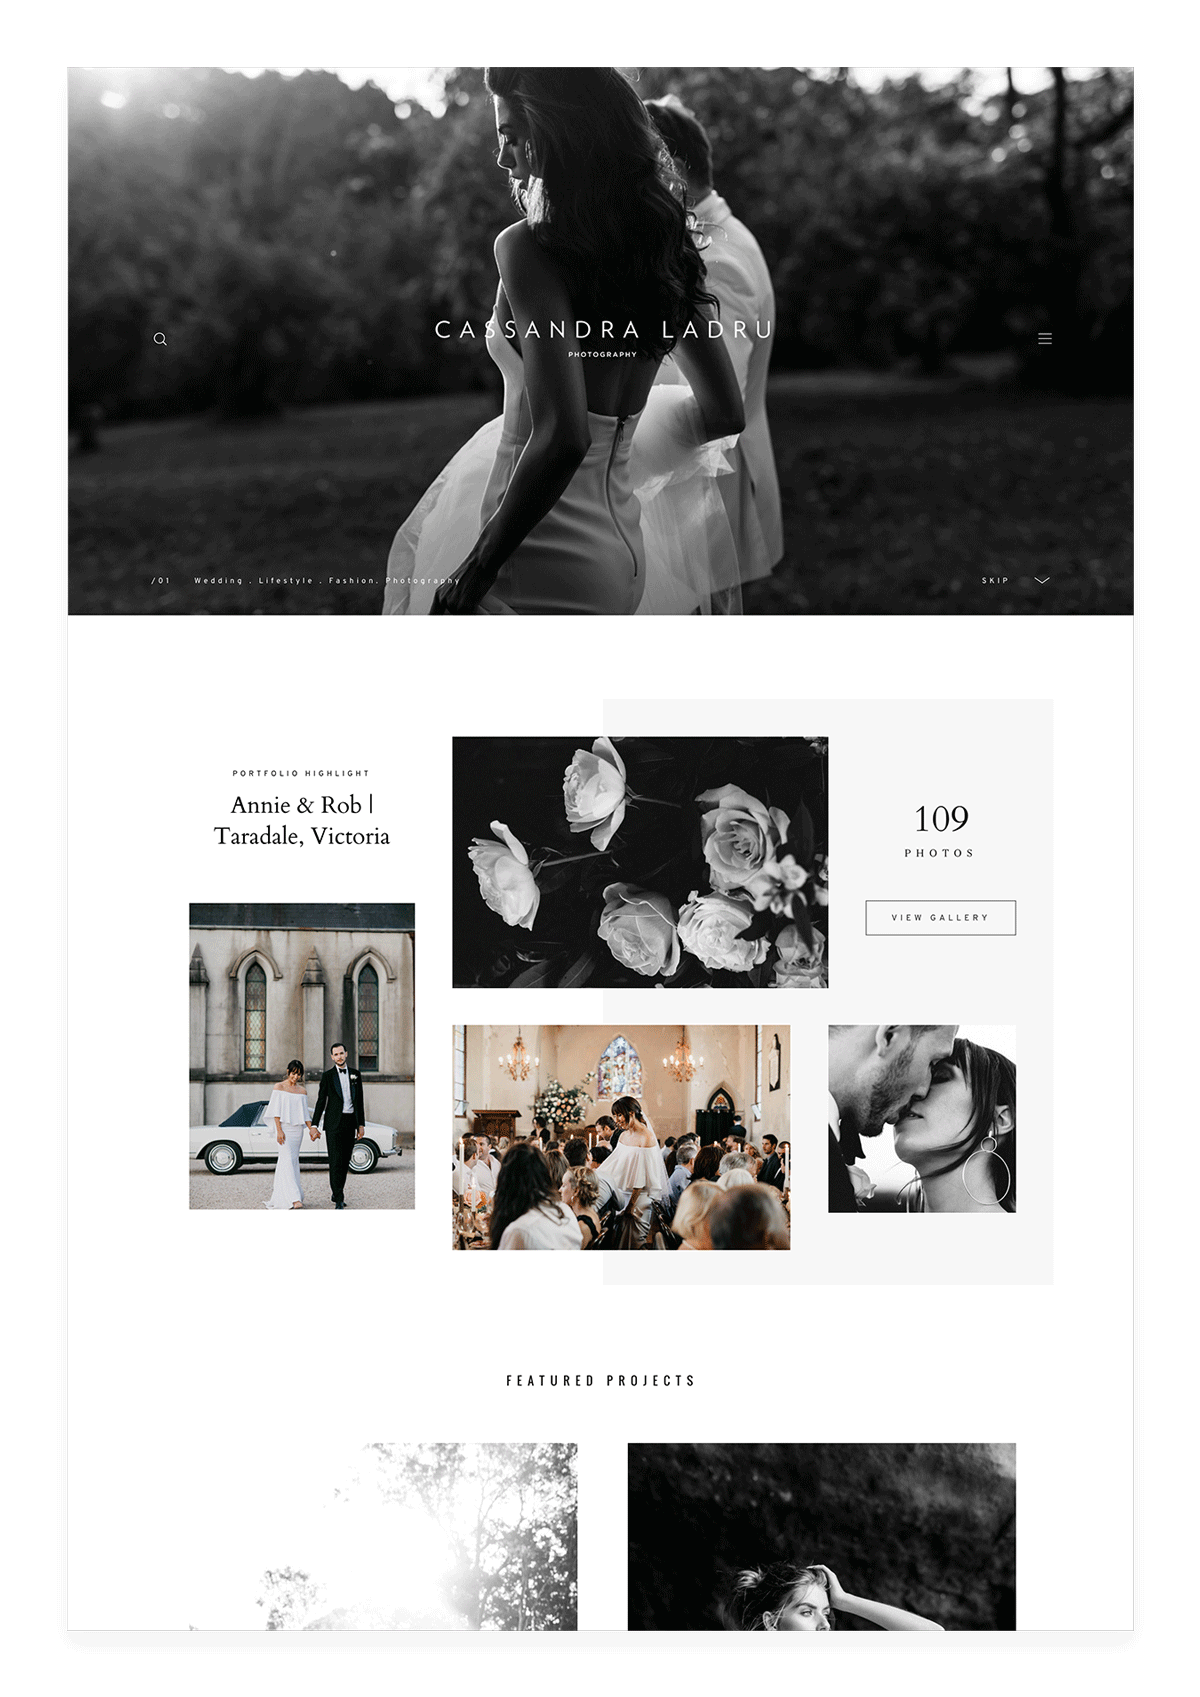 Inspirational-photography-websites---elegant-wedding-photography---cassandra-ladru